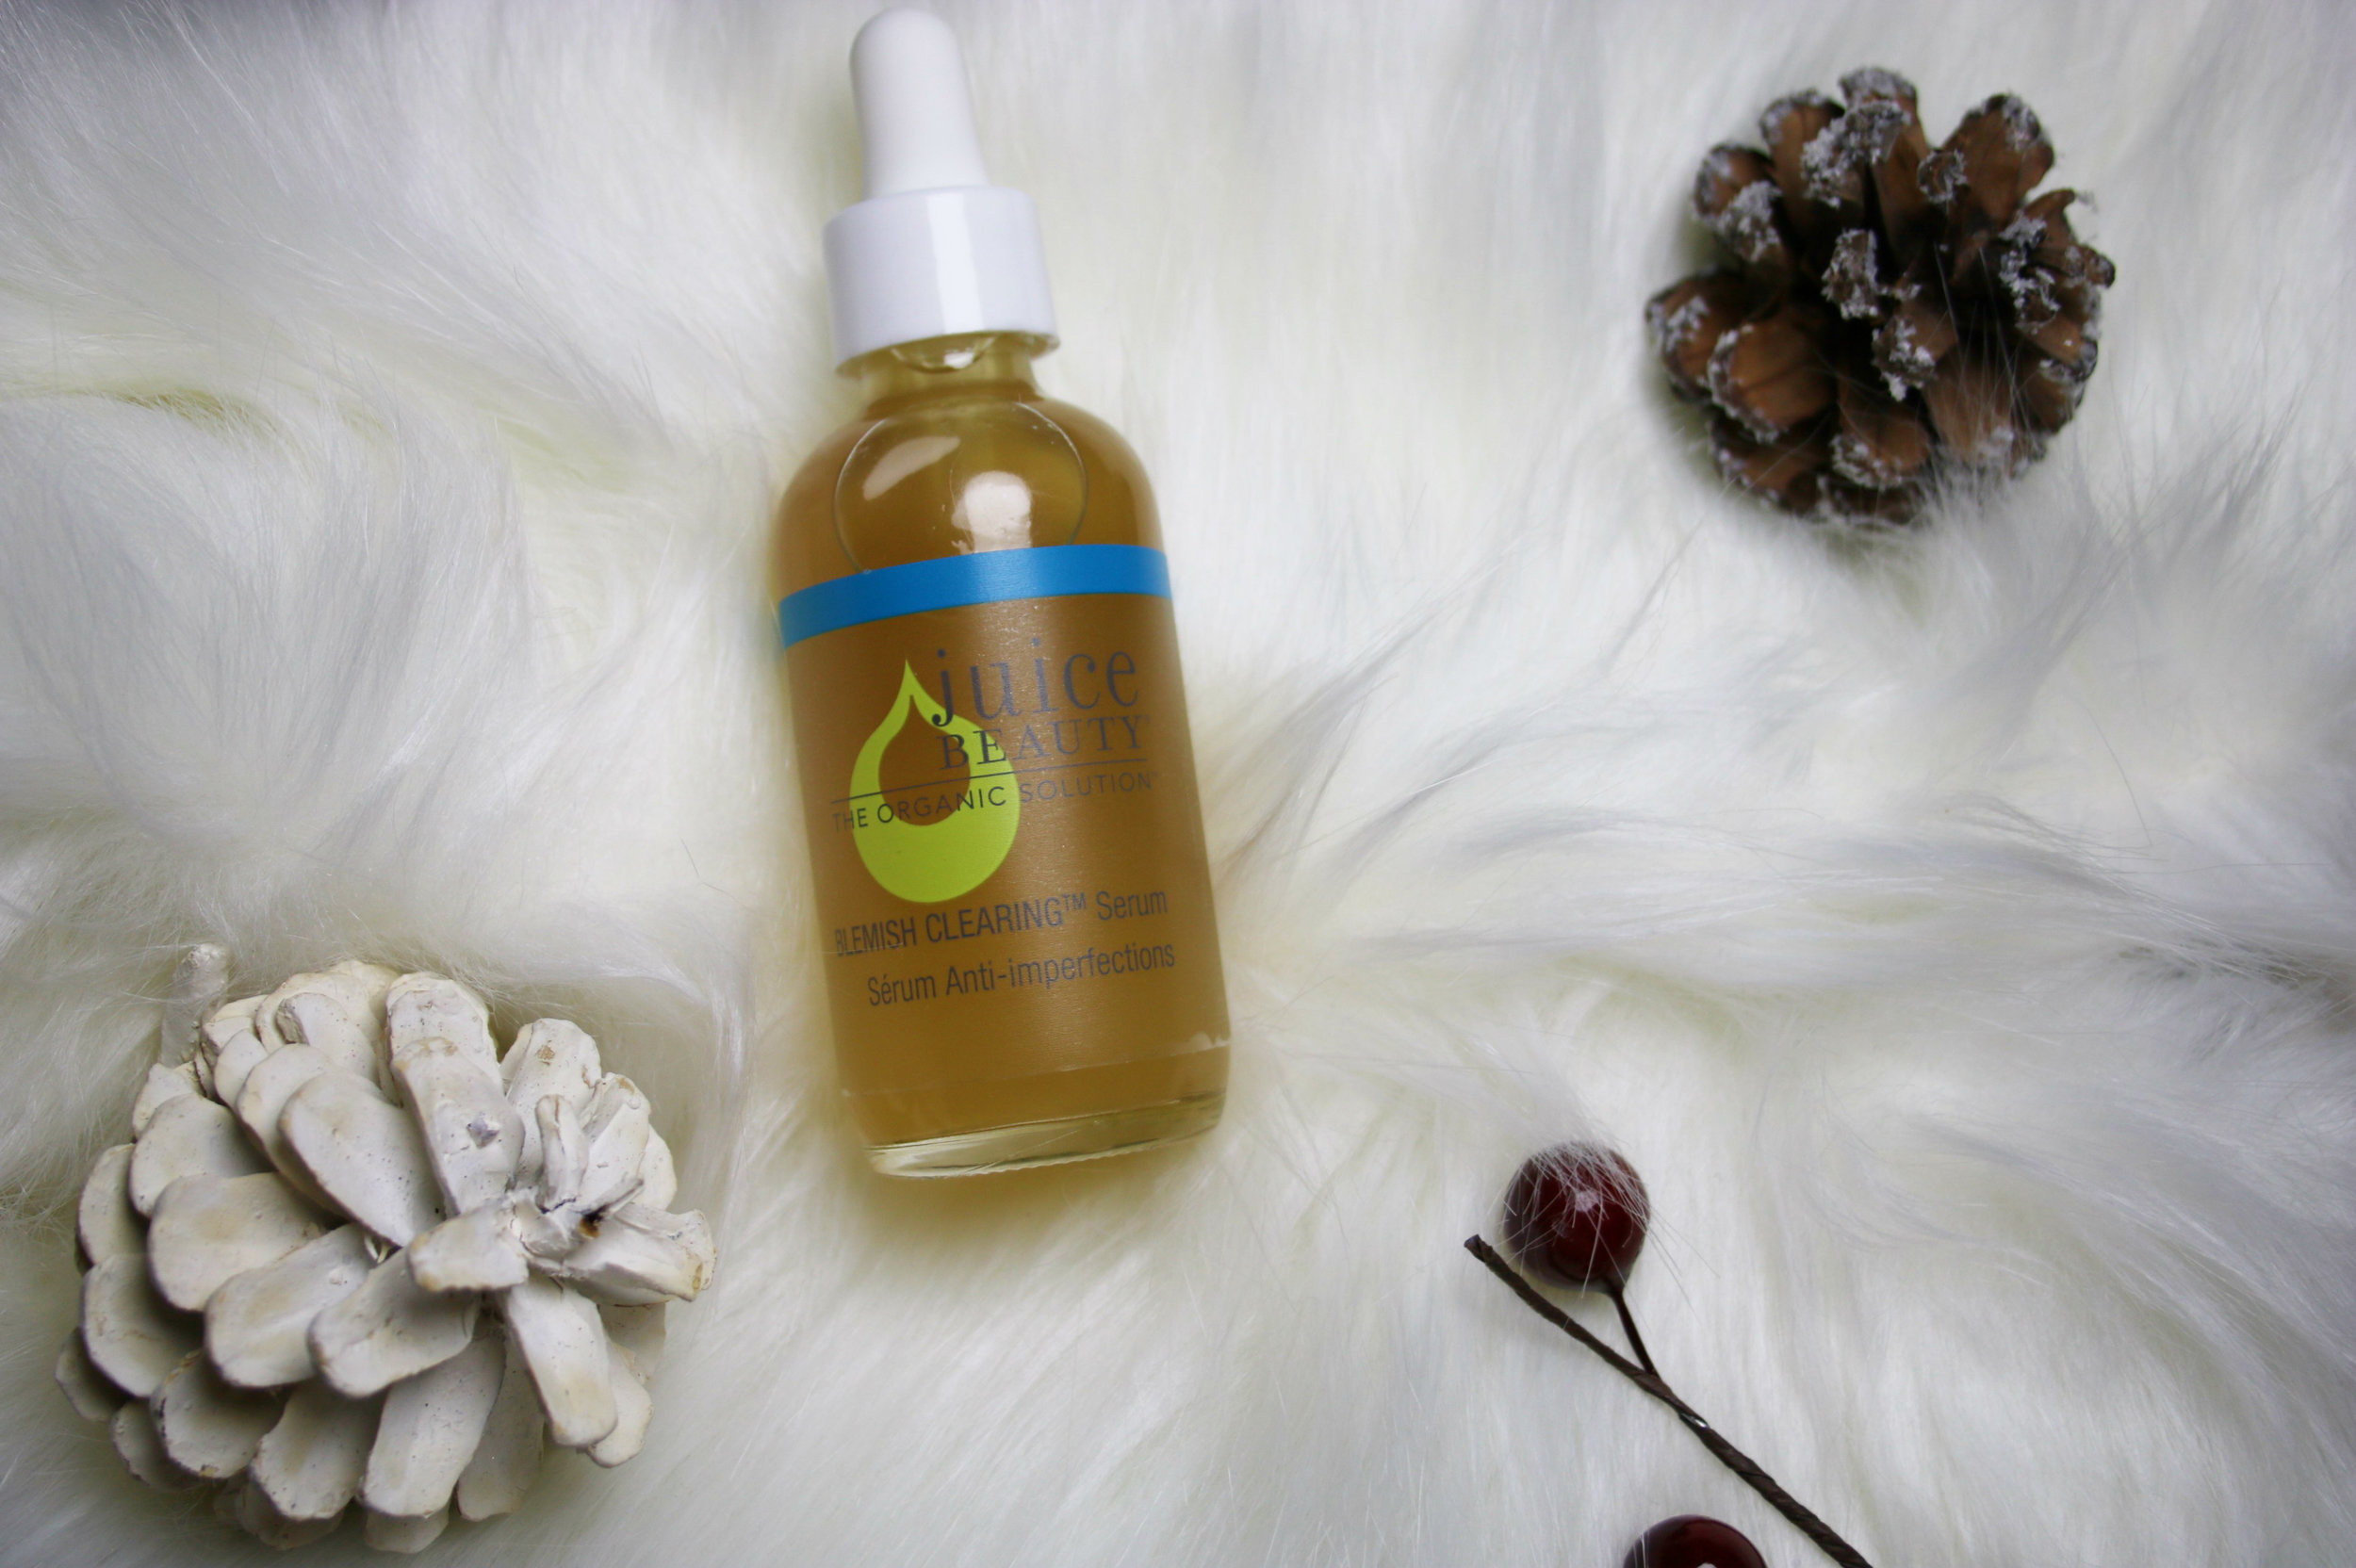 juice beauty product review, juice beauty review, juice beauty blemish clearing serum, juice beauty serum, organic skin care product, natural skin care product, juice beauty, skin care for combination skin